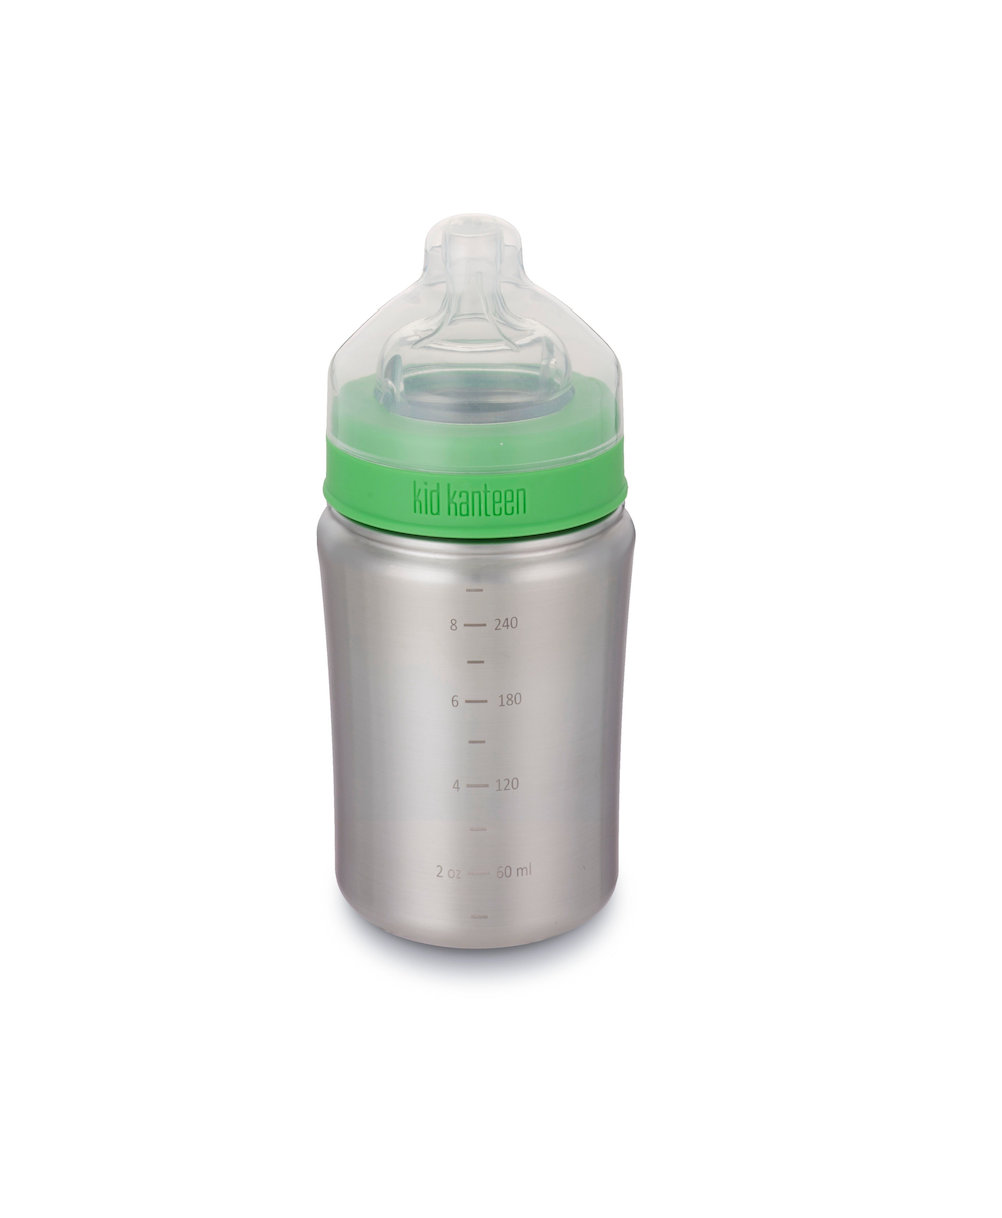 Brushed stainless steel contoured bottle with bright green cap and clear silicone nipple. Bottle has a clear cap that covers the nipple. Milileter and ounce lines are marked on the side of the bottle.